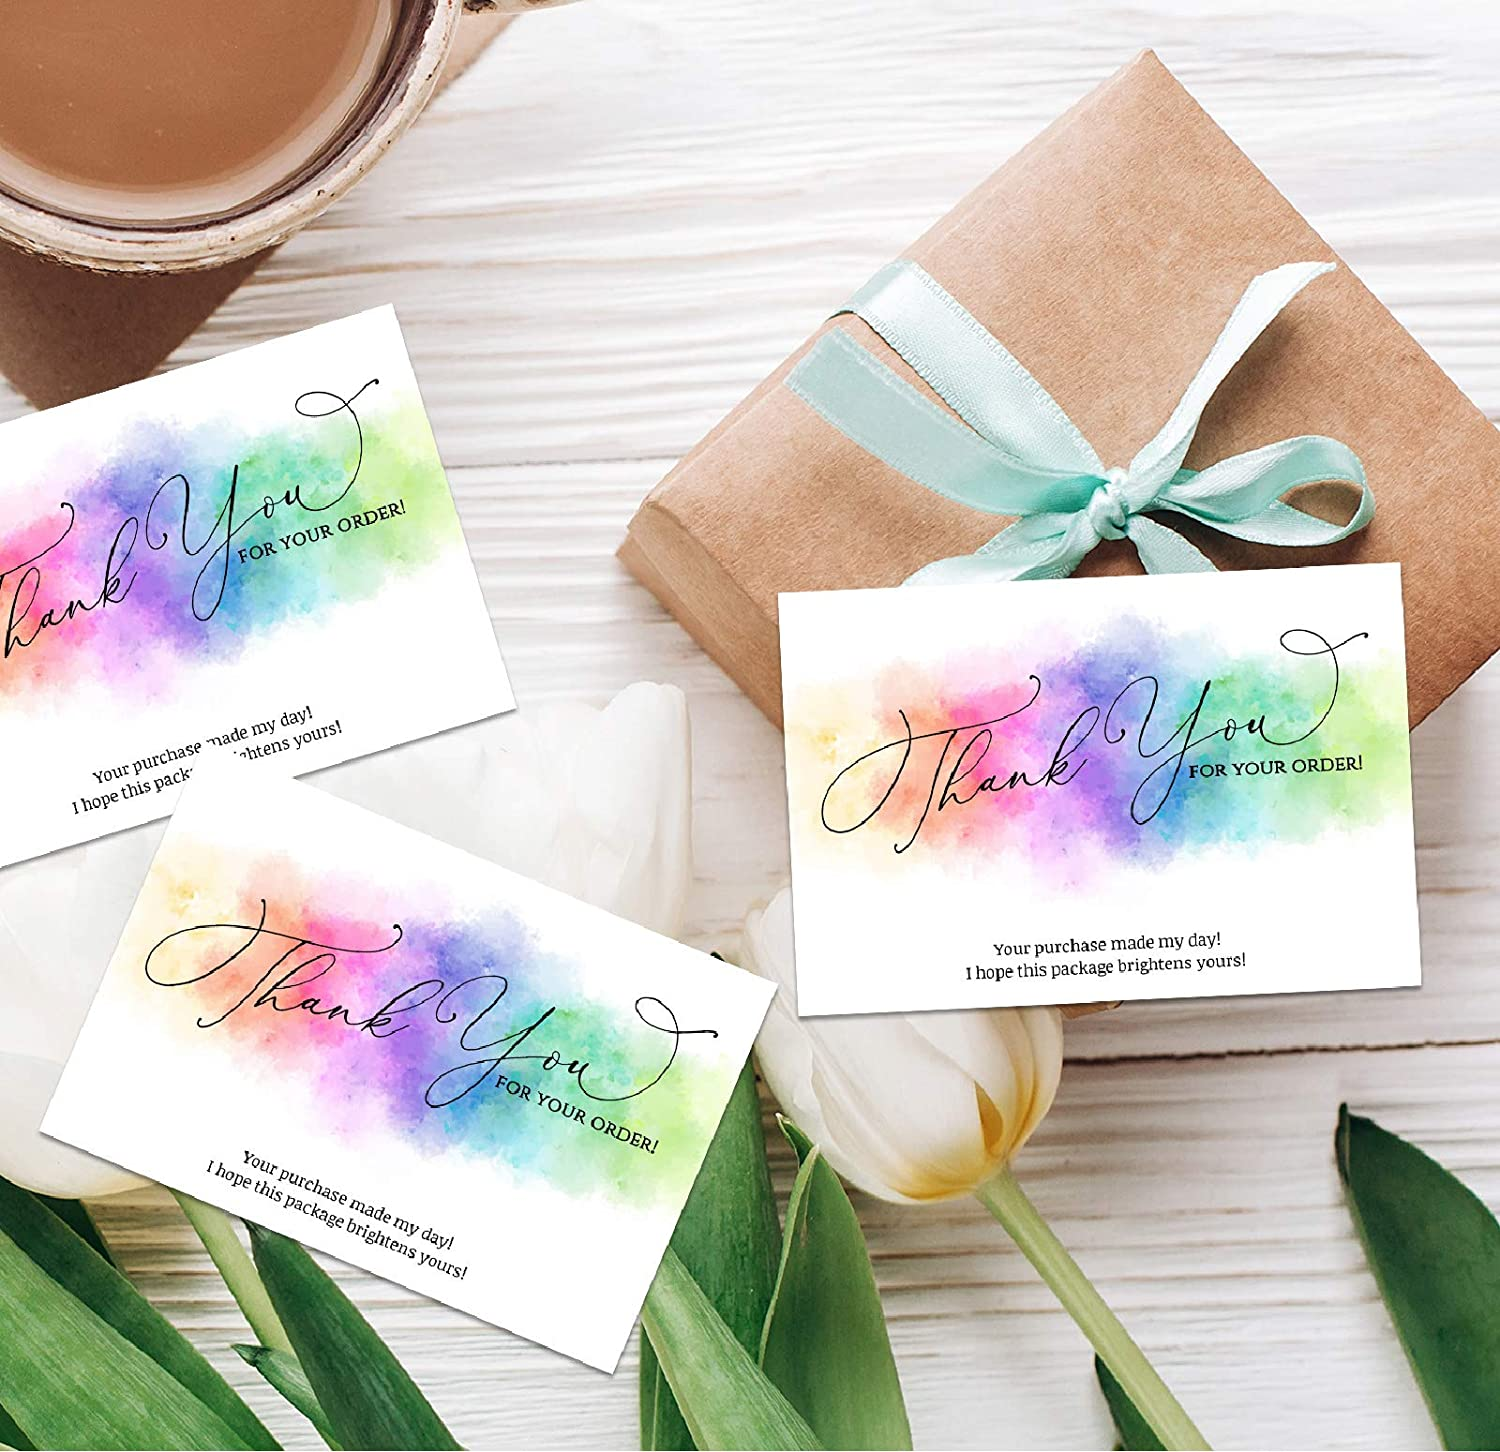 Customer Appreciation Note Cards Online Business 3.5 x 2 You Made My Day Purchase Order Inserts 100 Watercolor Rainbow Thank You for Your Order Cards for Small Business Business Card Size